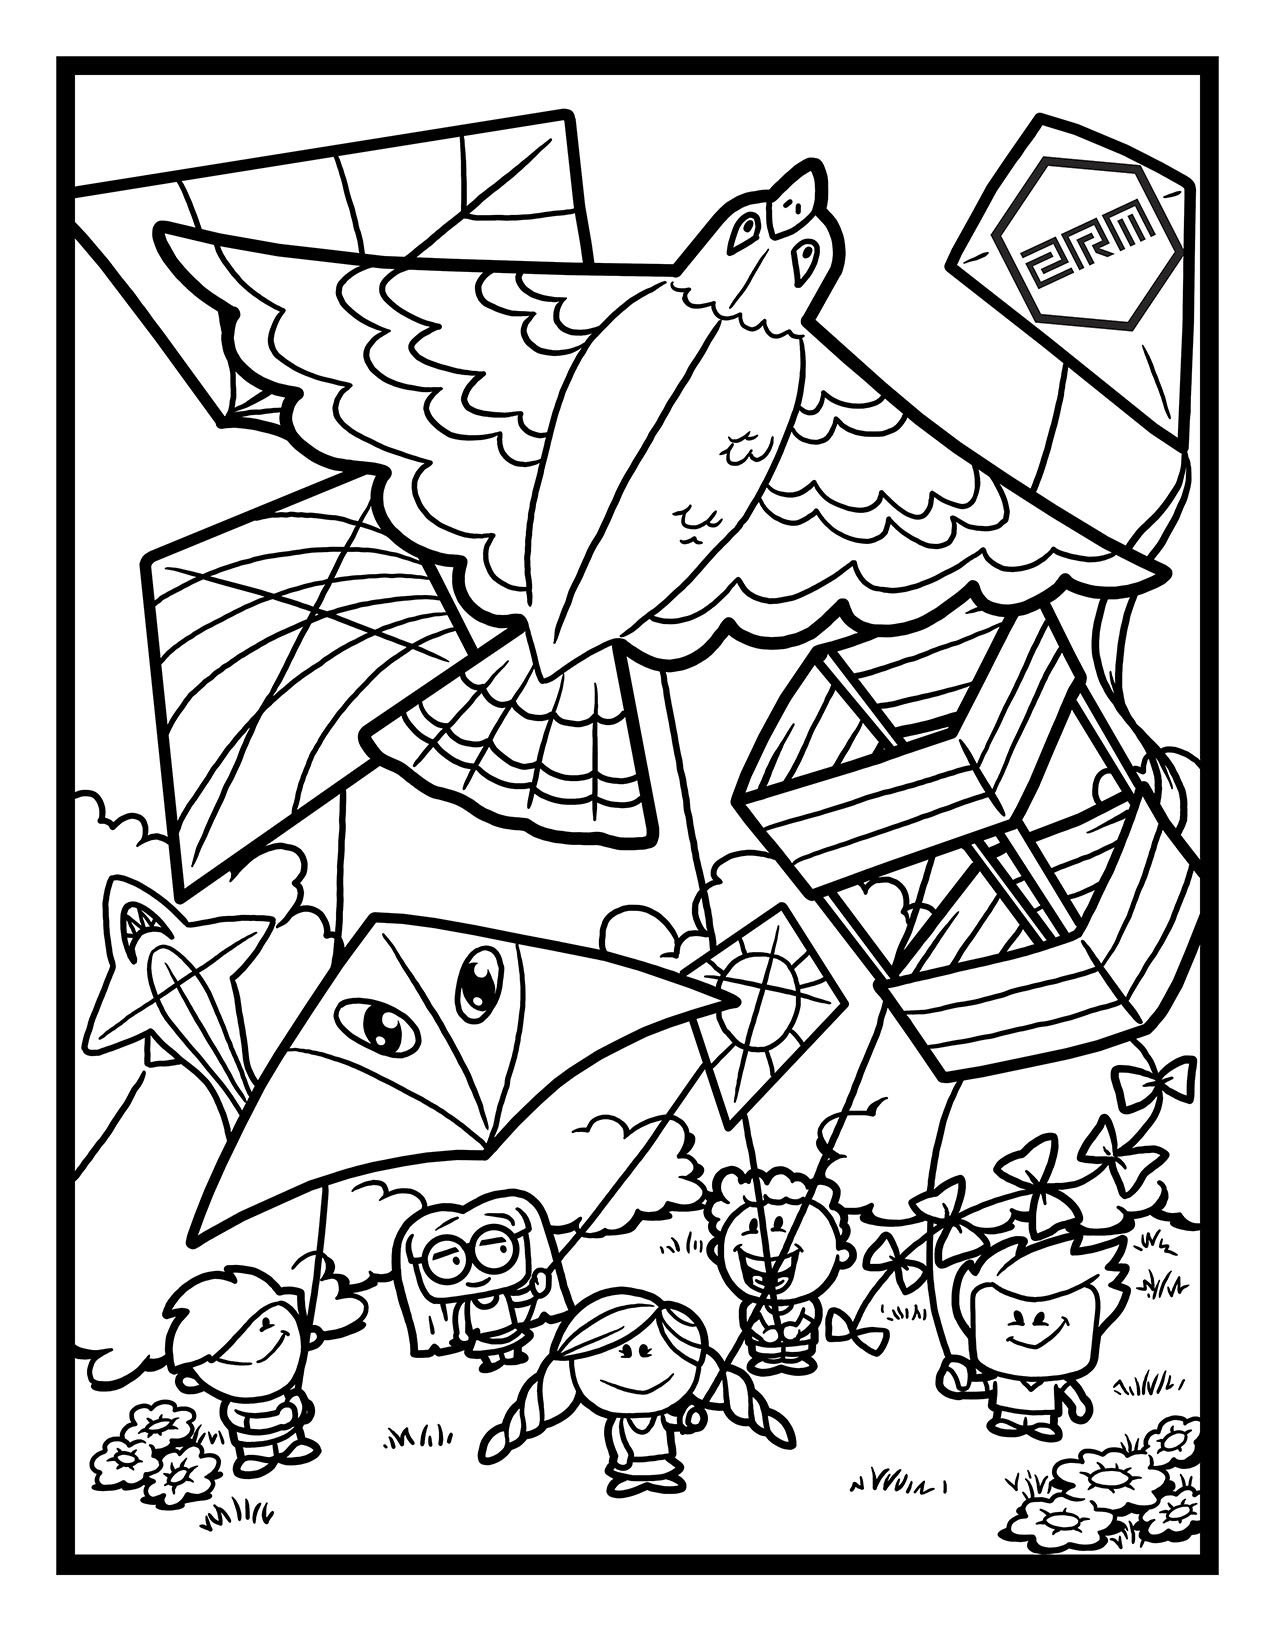 Two Rivers Marketing Flying Kites Coloring Page